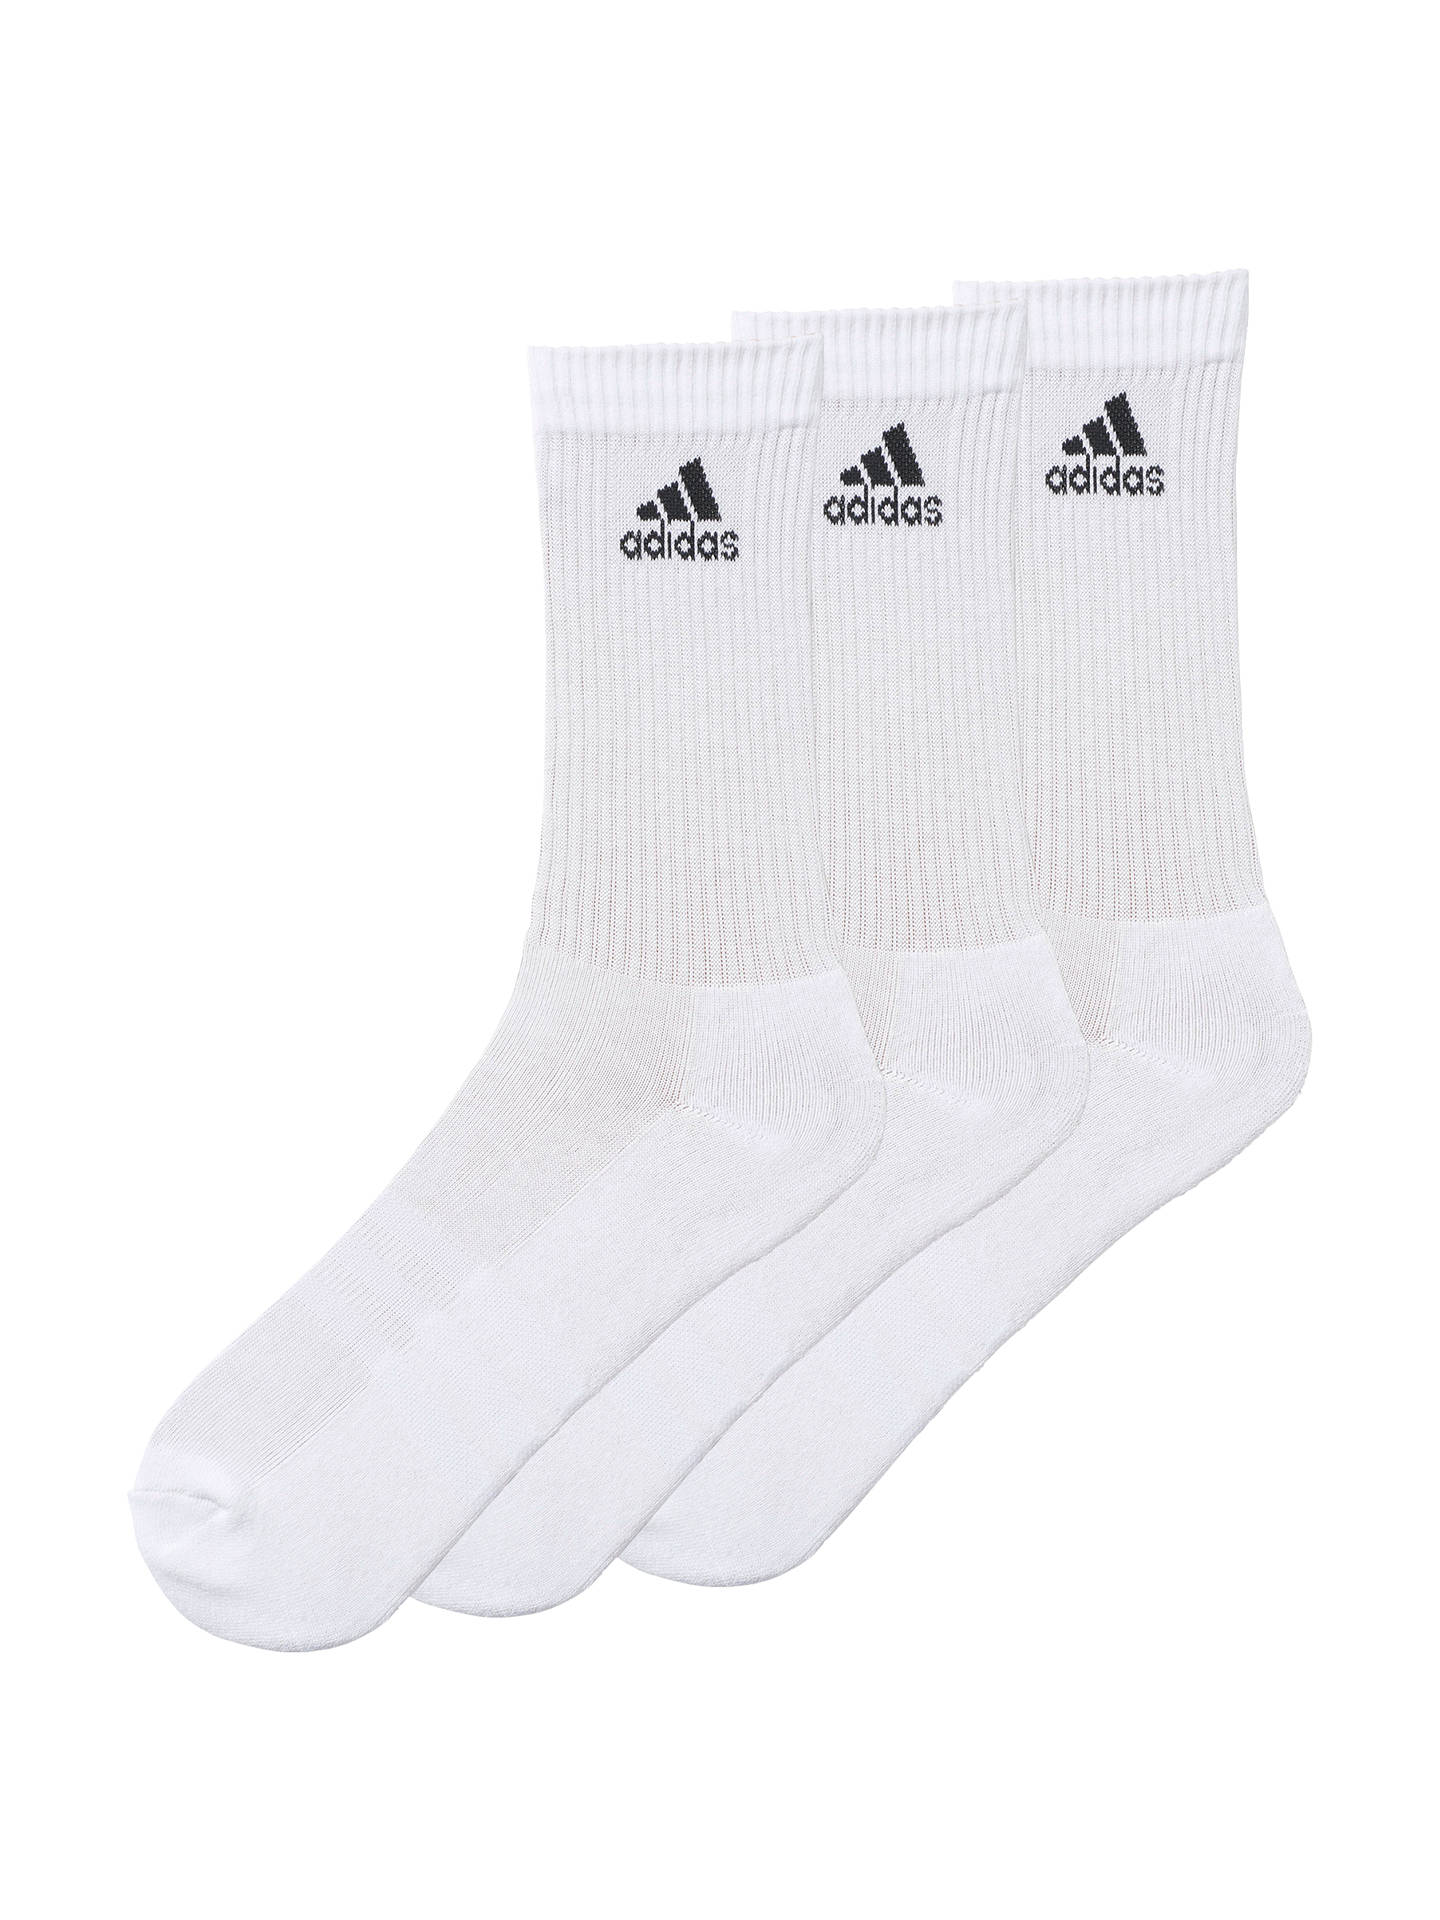 Buy adidas Half Cushioned Socks, Pack of 3, White, M Online at johnlewis.com